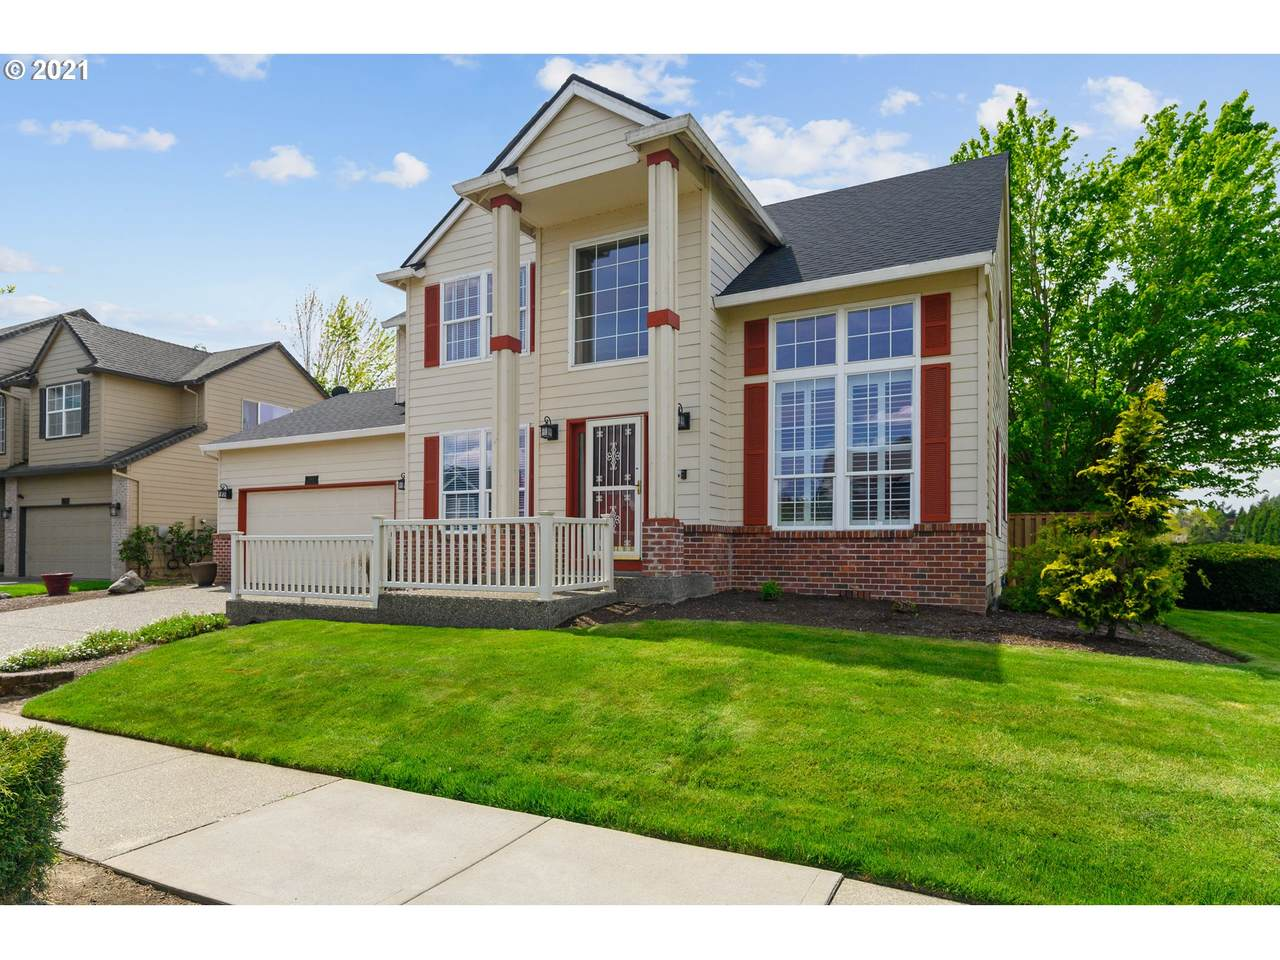 31419 Orchard Dr - Photo 1